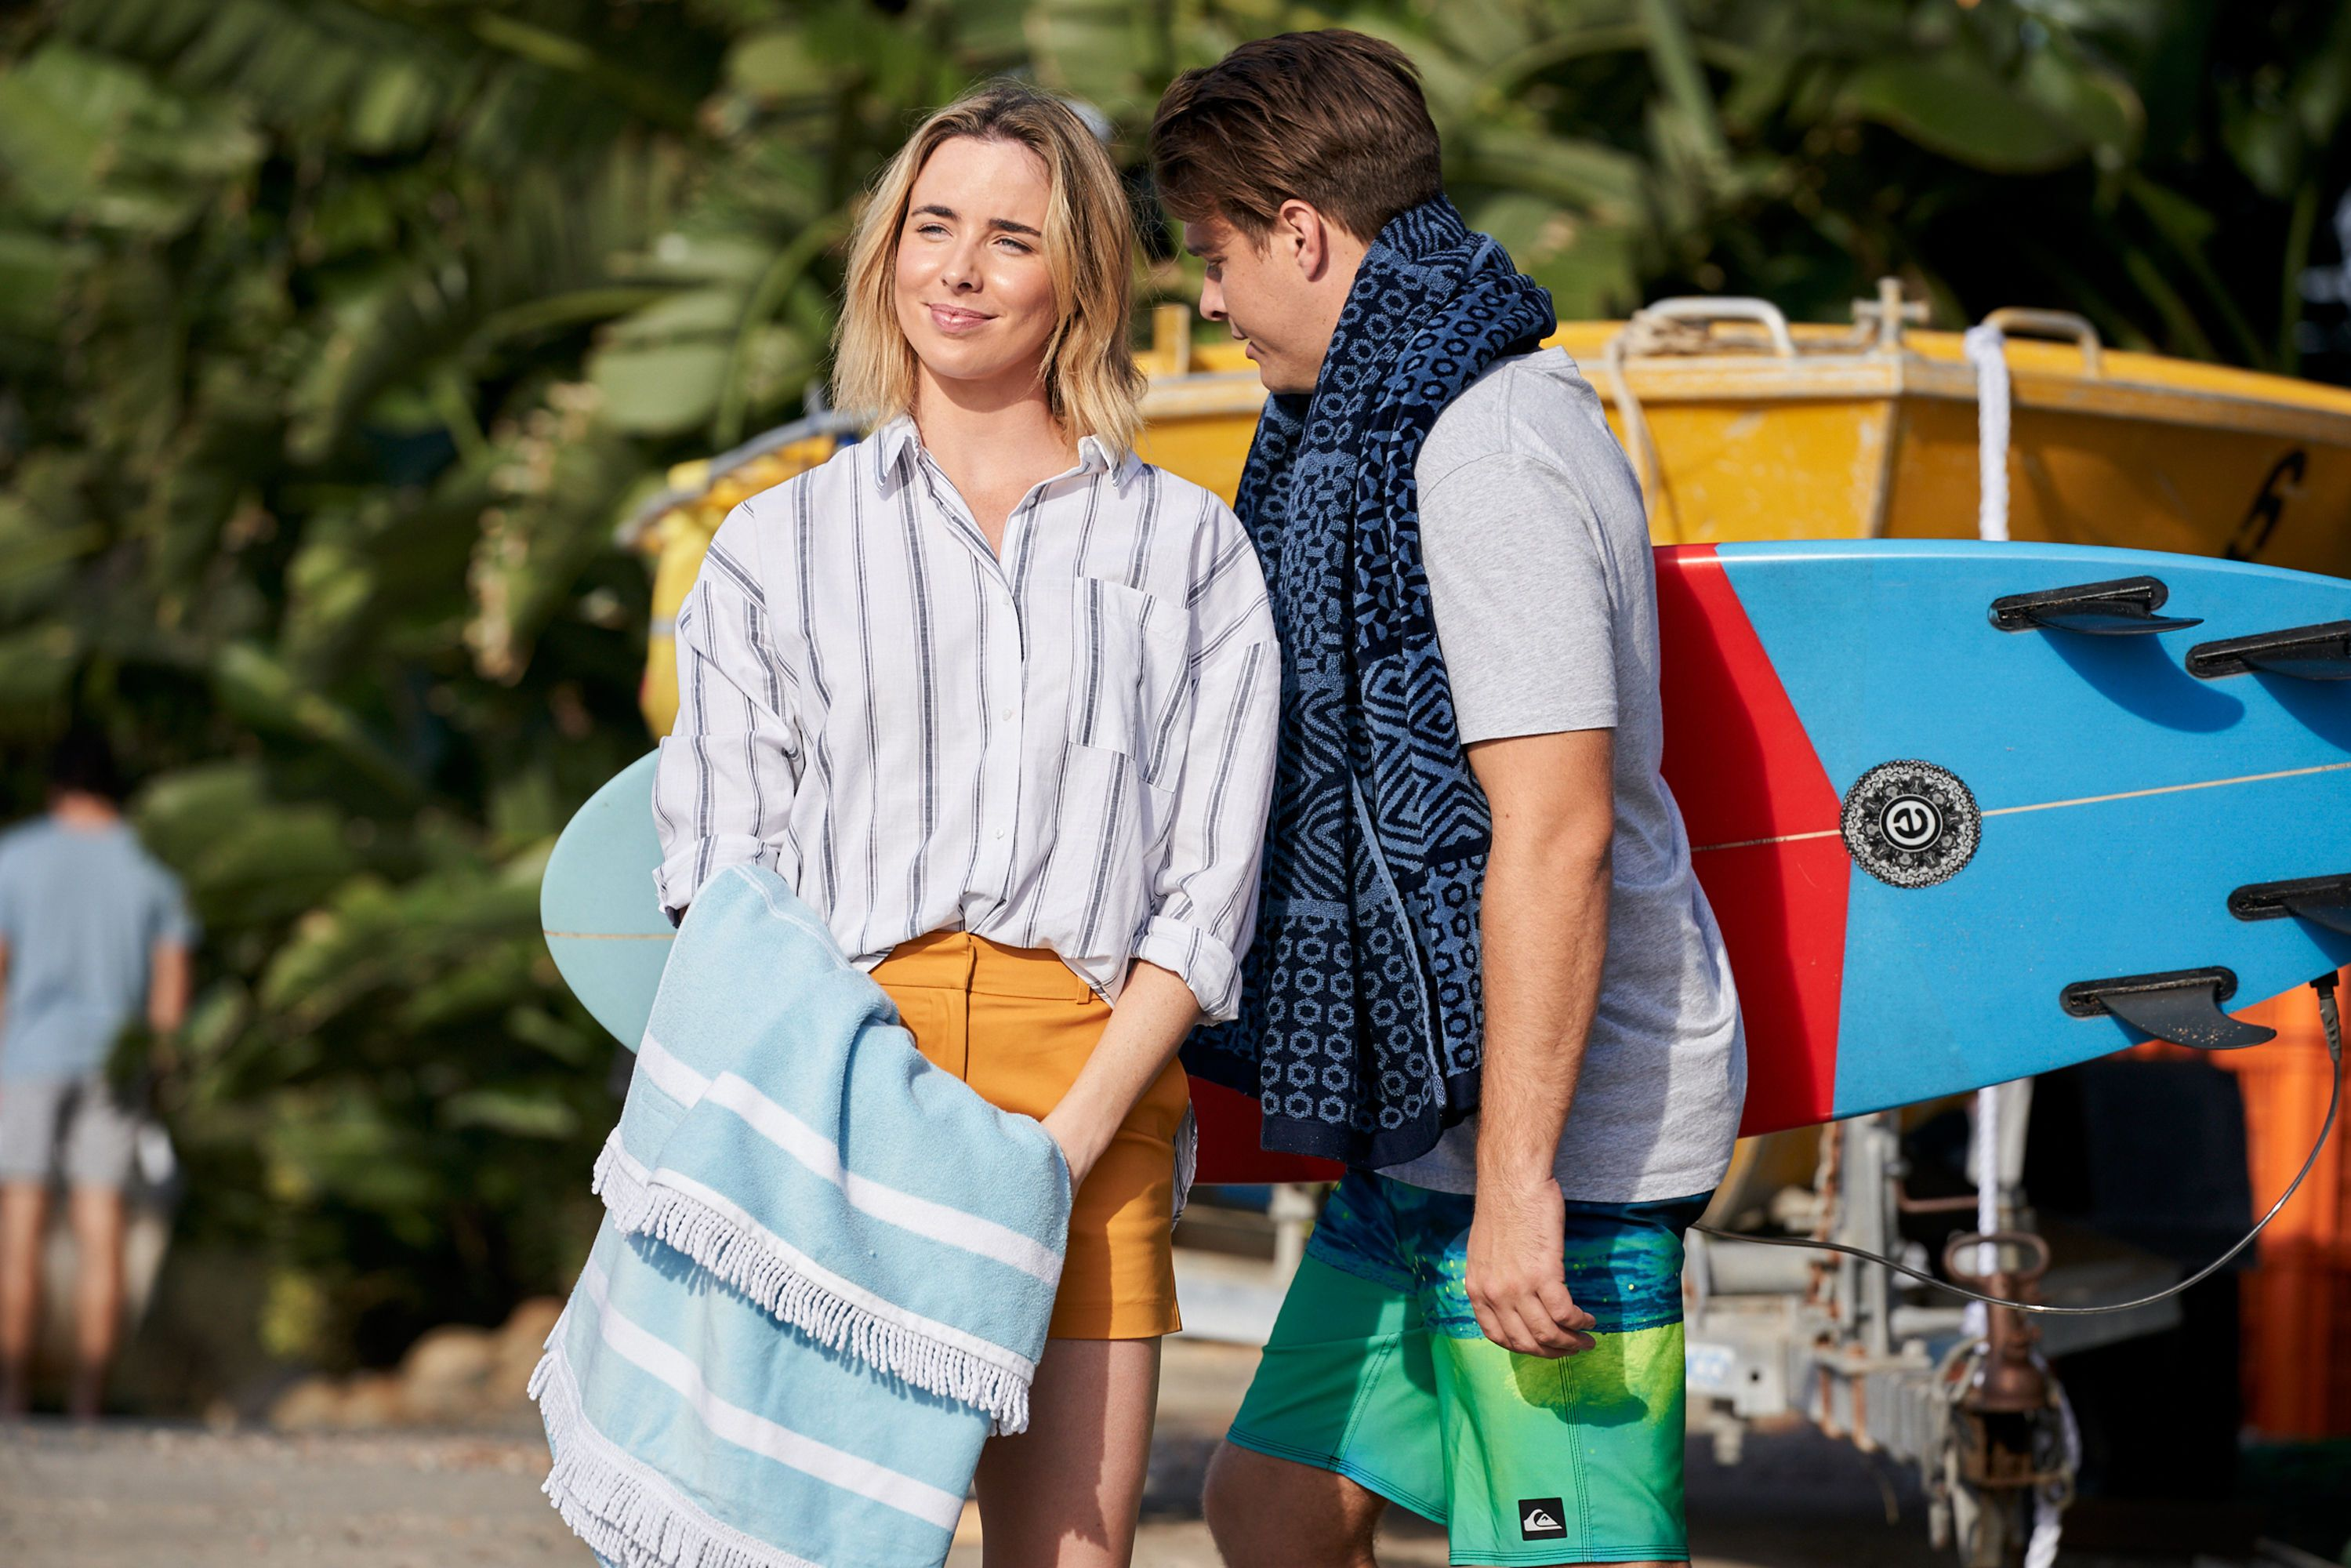 Chelsea Campbell and Colby Thorne in Home and Away